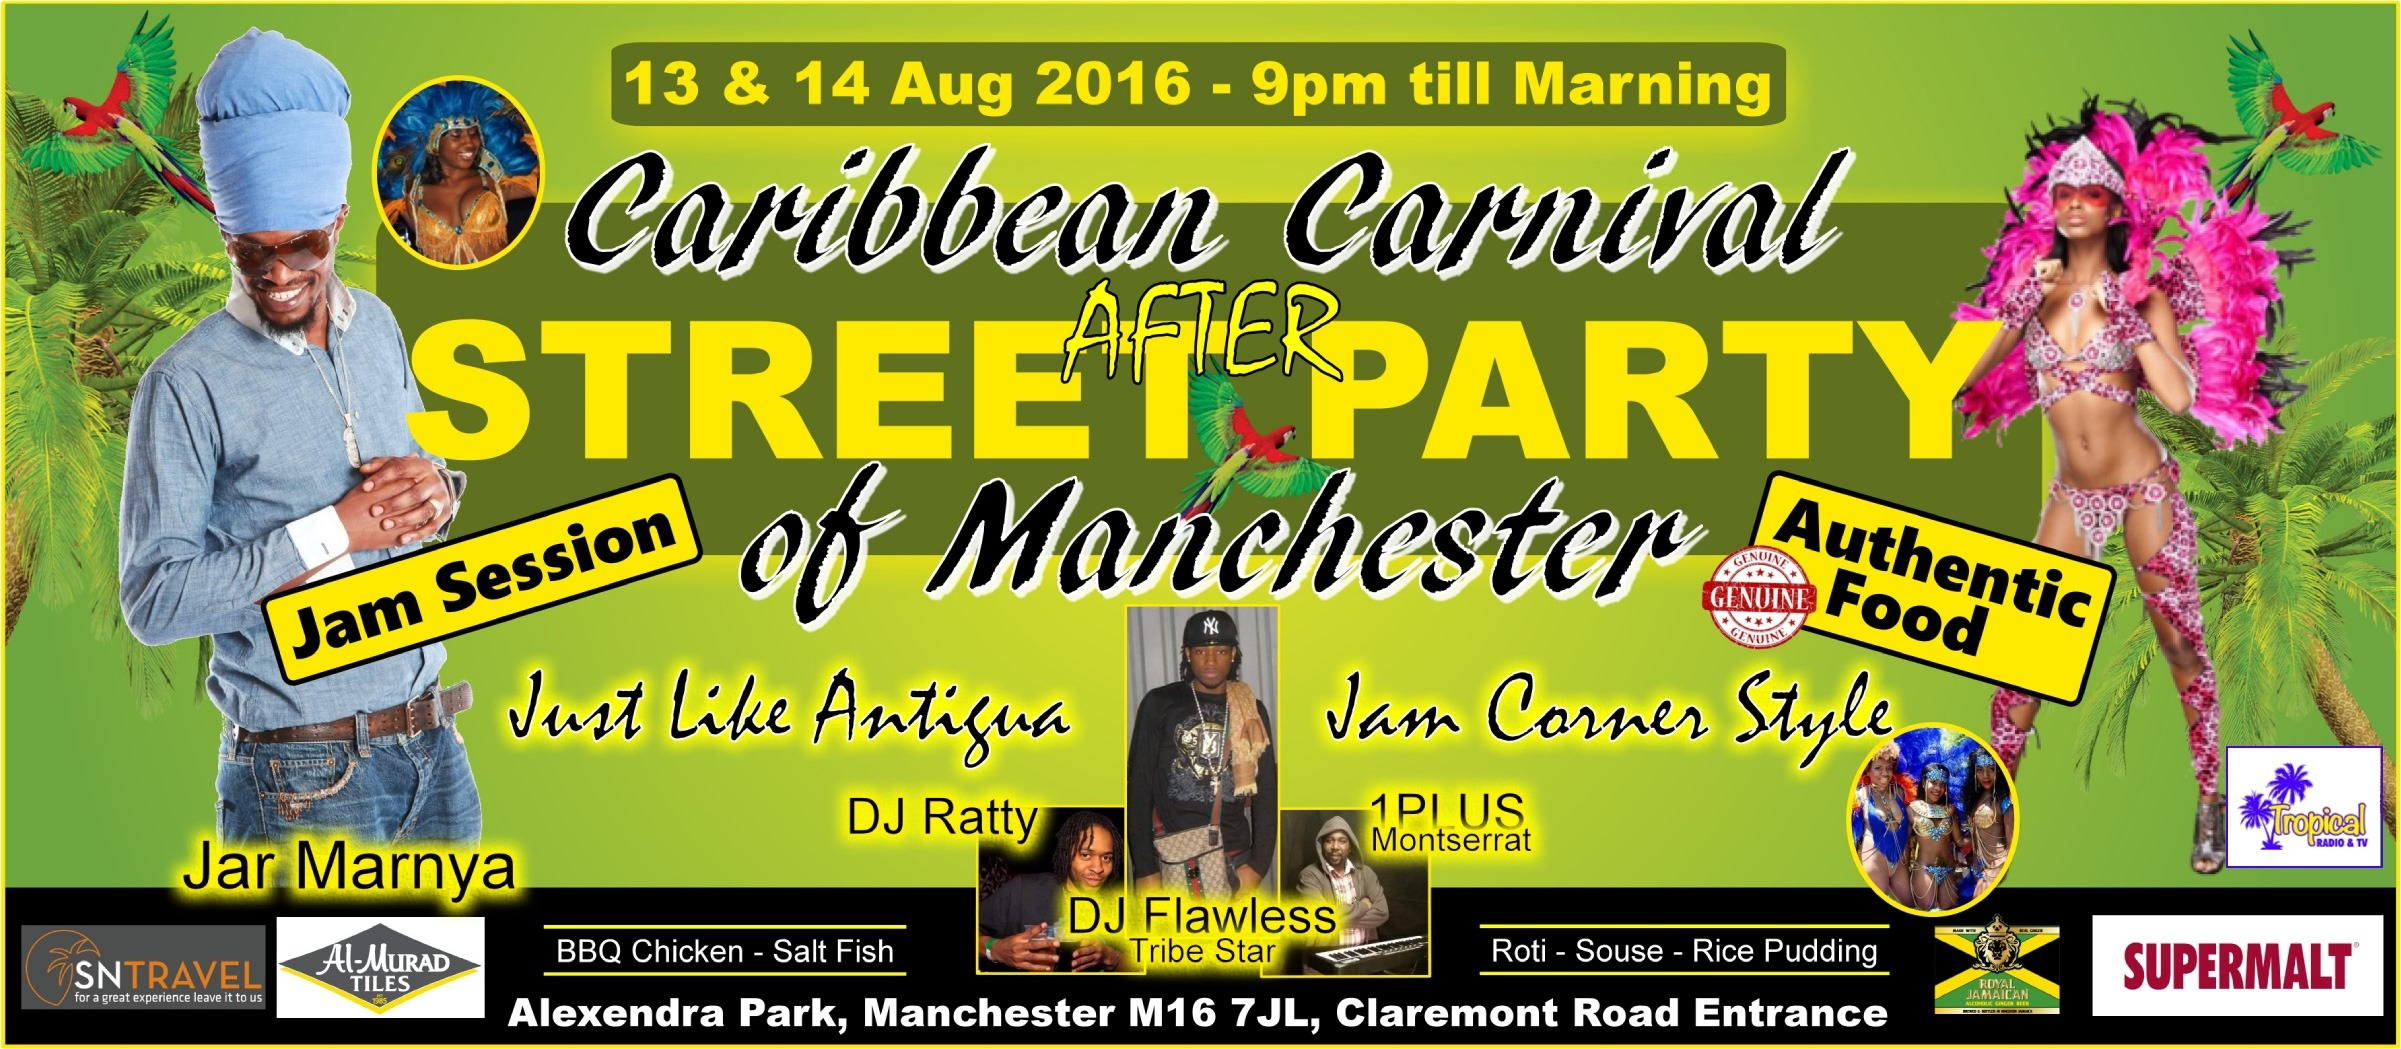 Carnival 2016 After Street Party